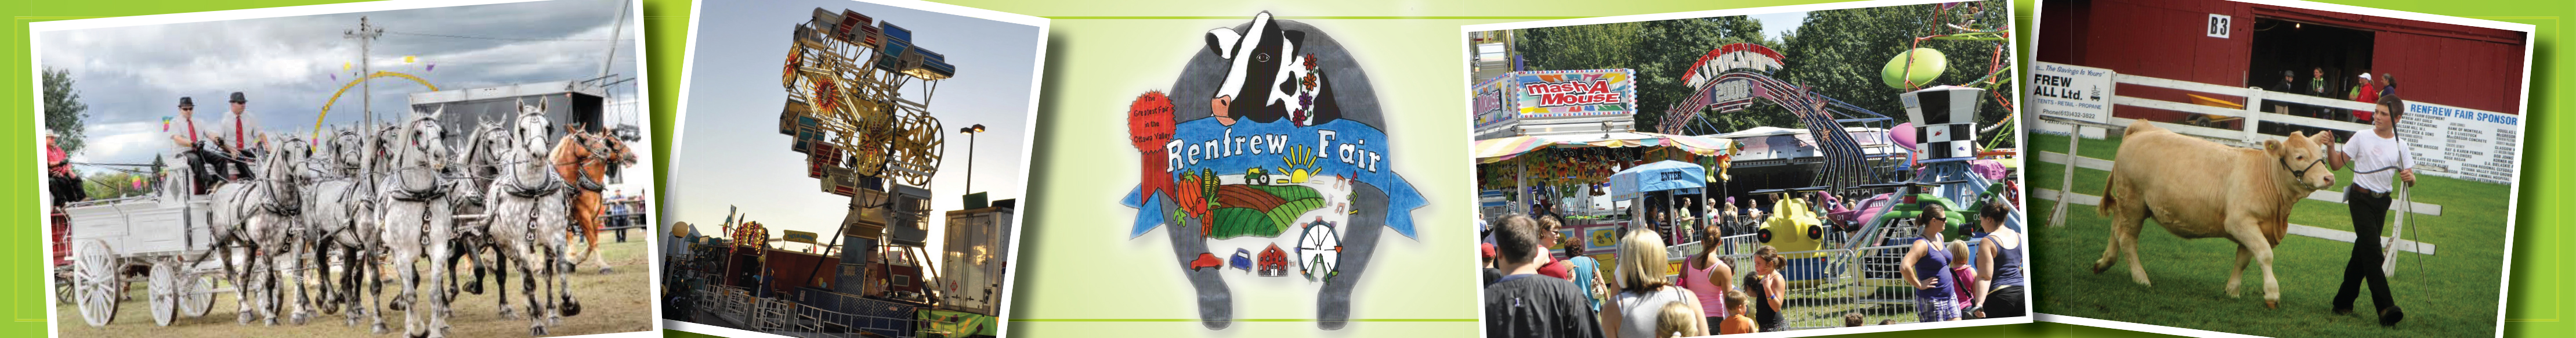 Renfrew Fair